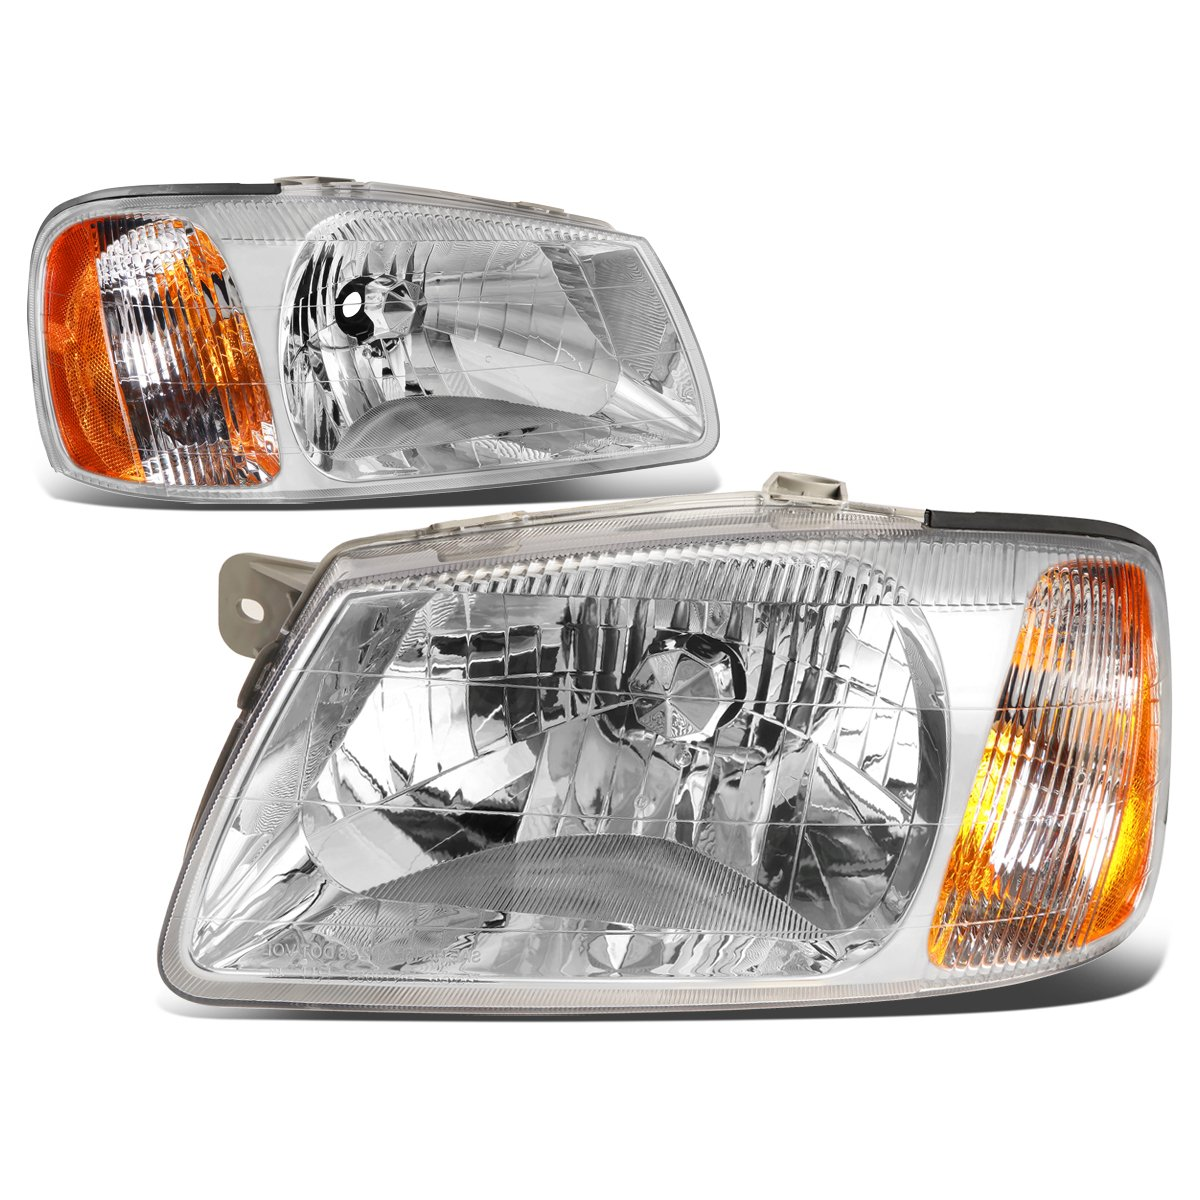 DNA Motoring HL-OH-049-CH-AM Headlight Driver /& Passenger Side